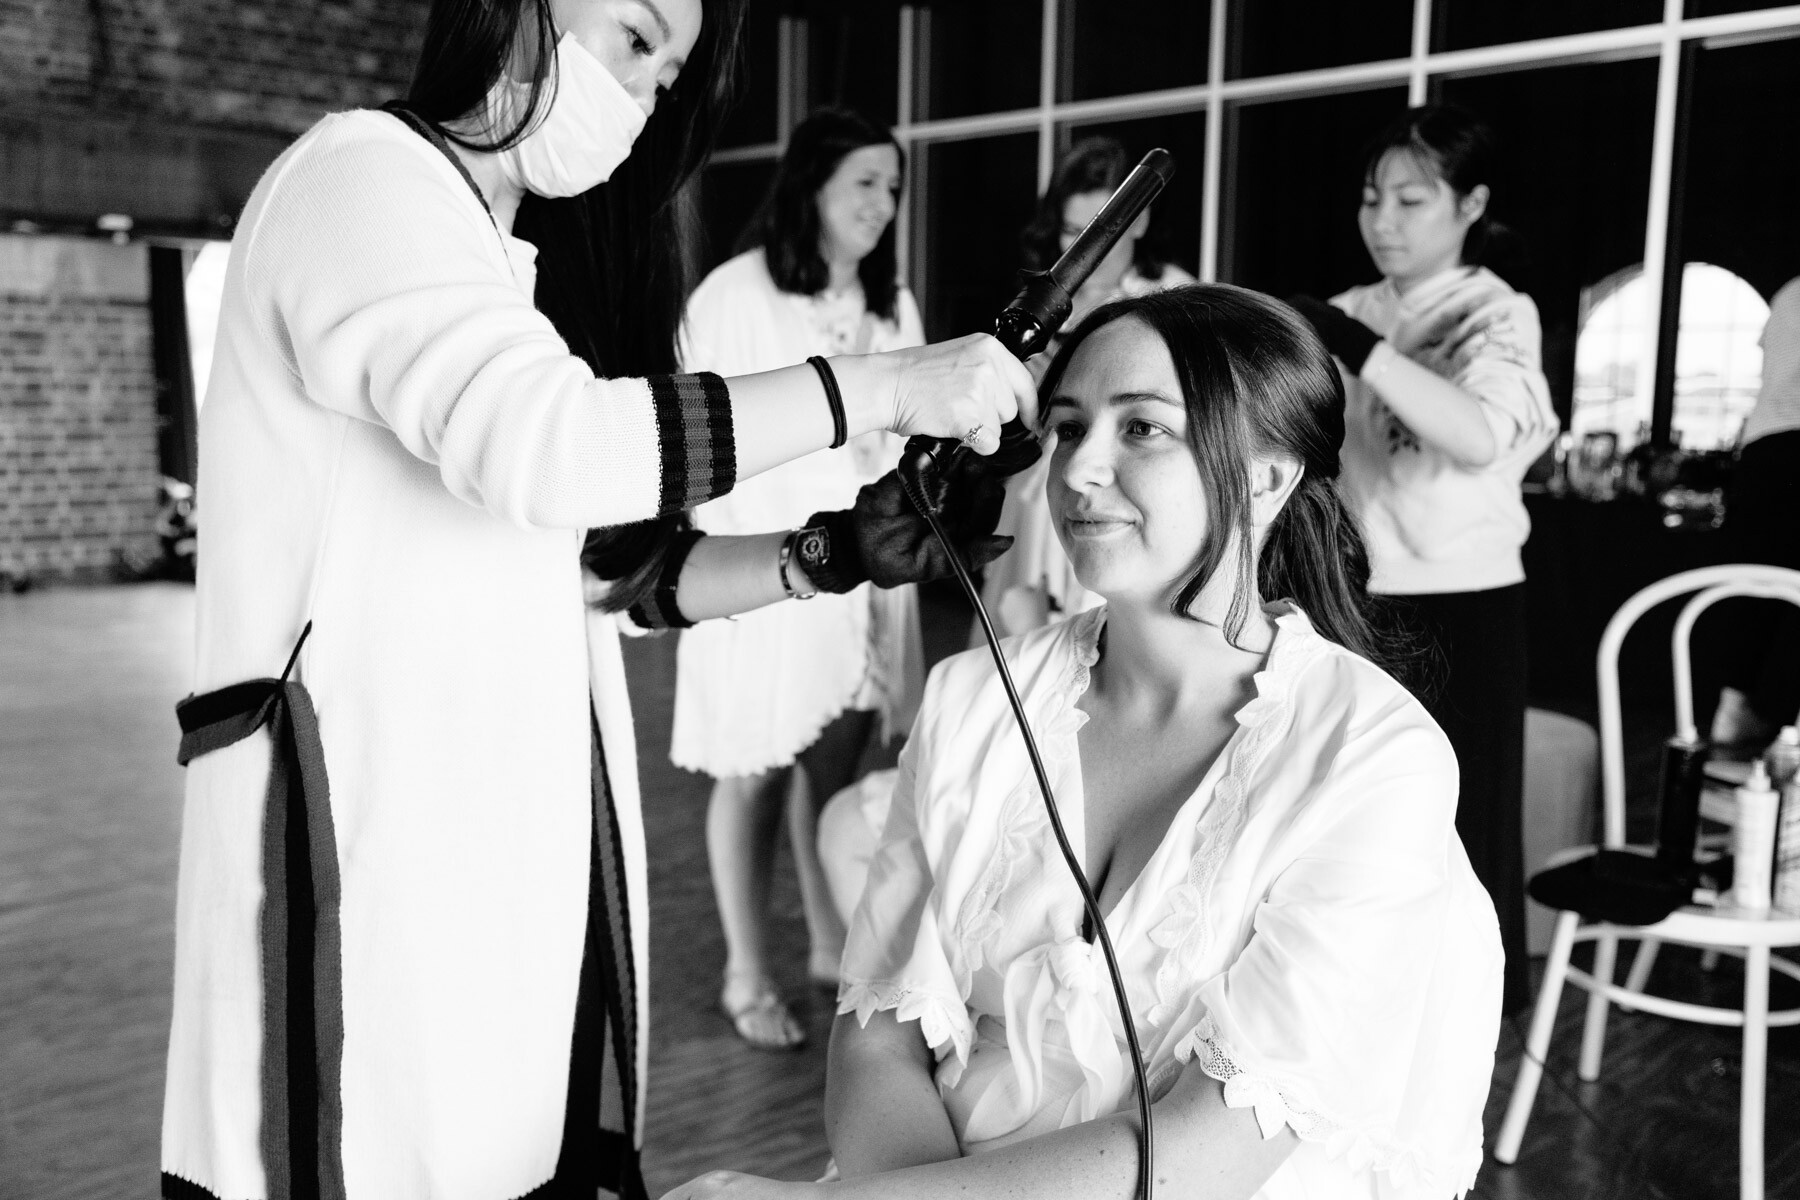 How many hours before the ceremony should the bride be ready?